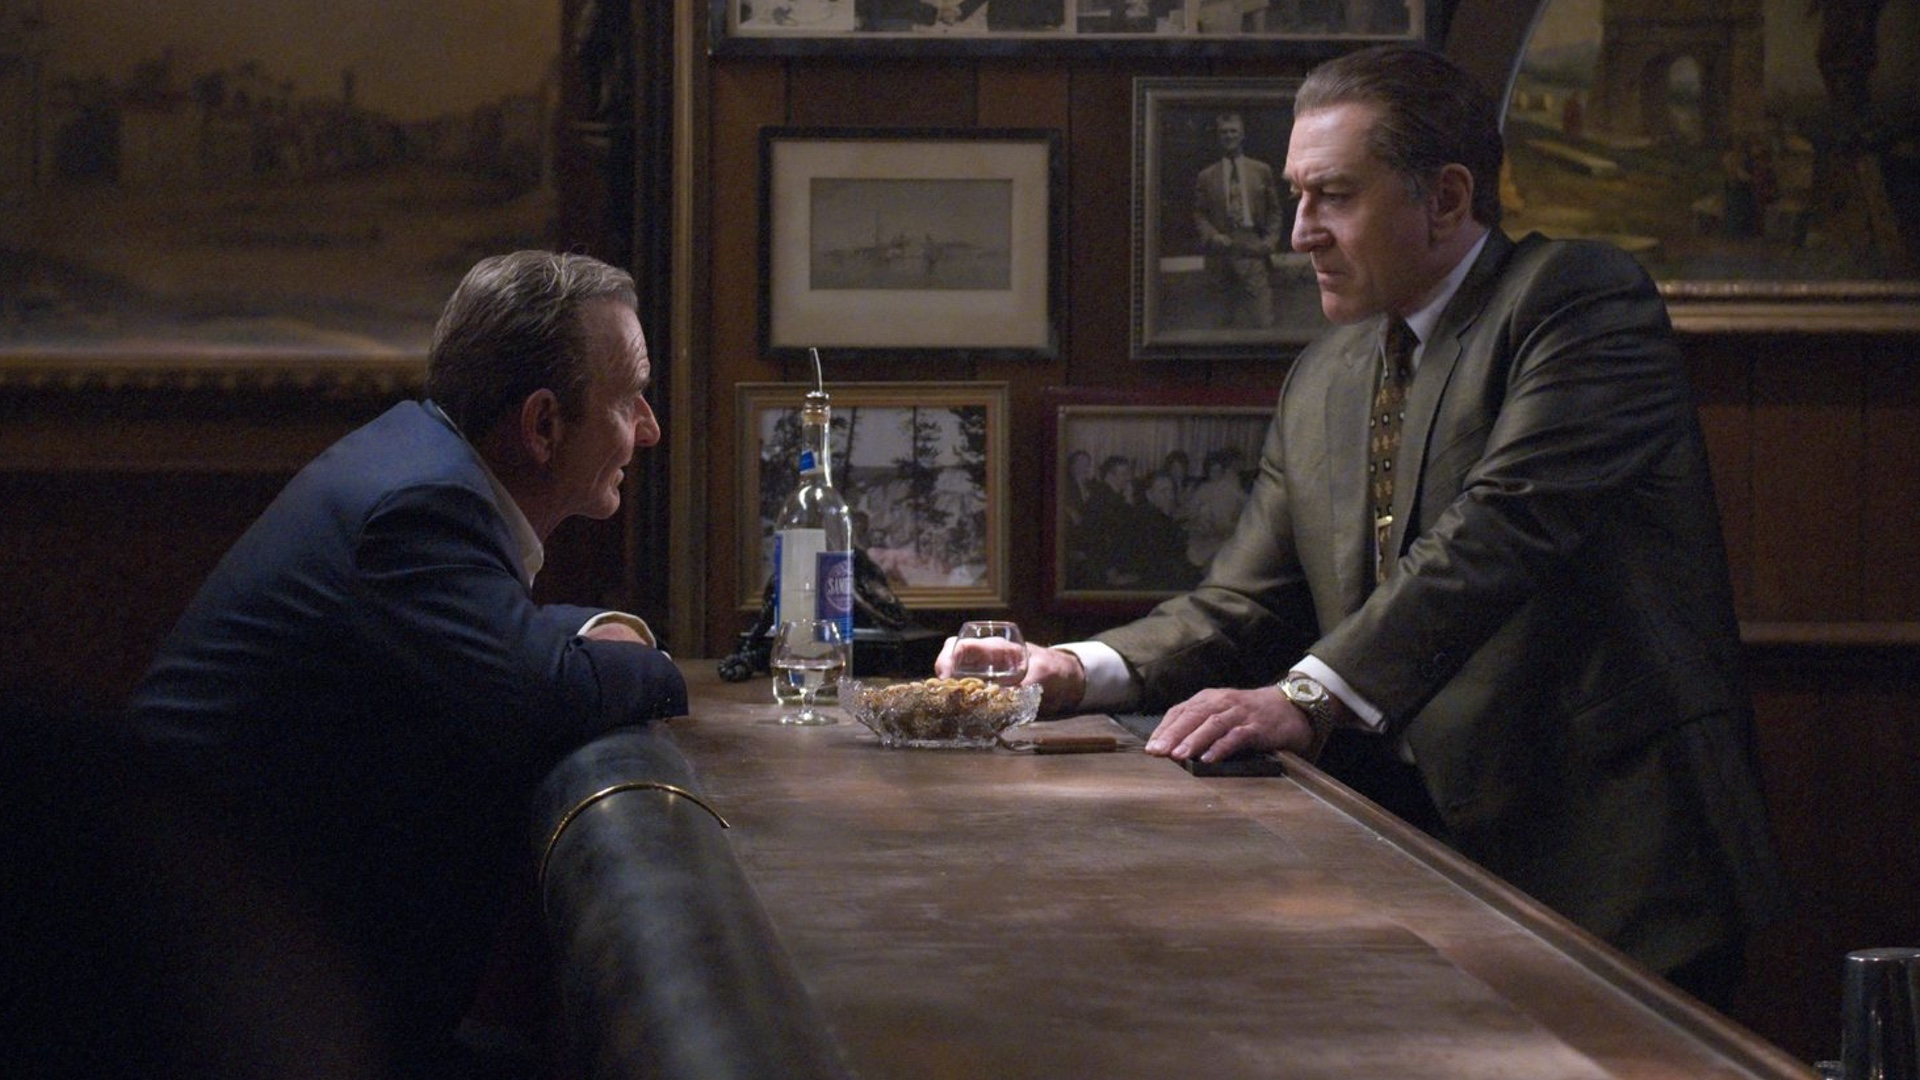 martin-scorseses-the-irishman-might-have-a-runtime-of-210-minutes-social.jpg